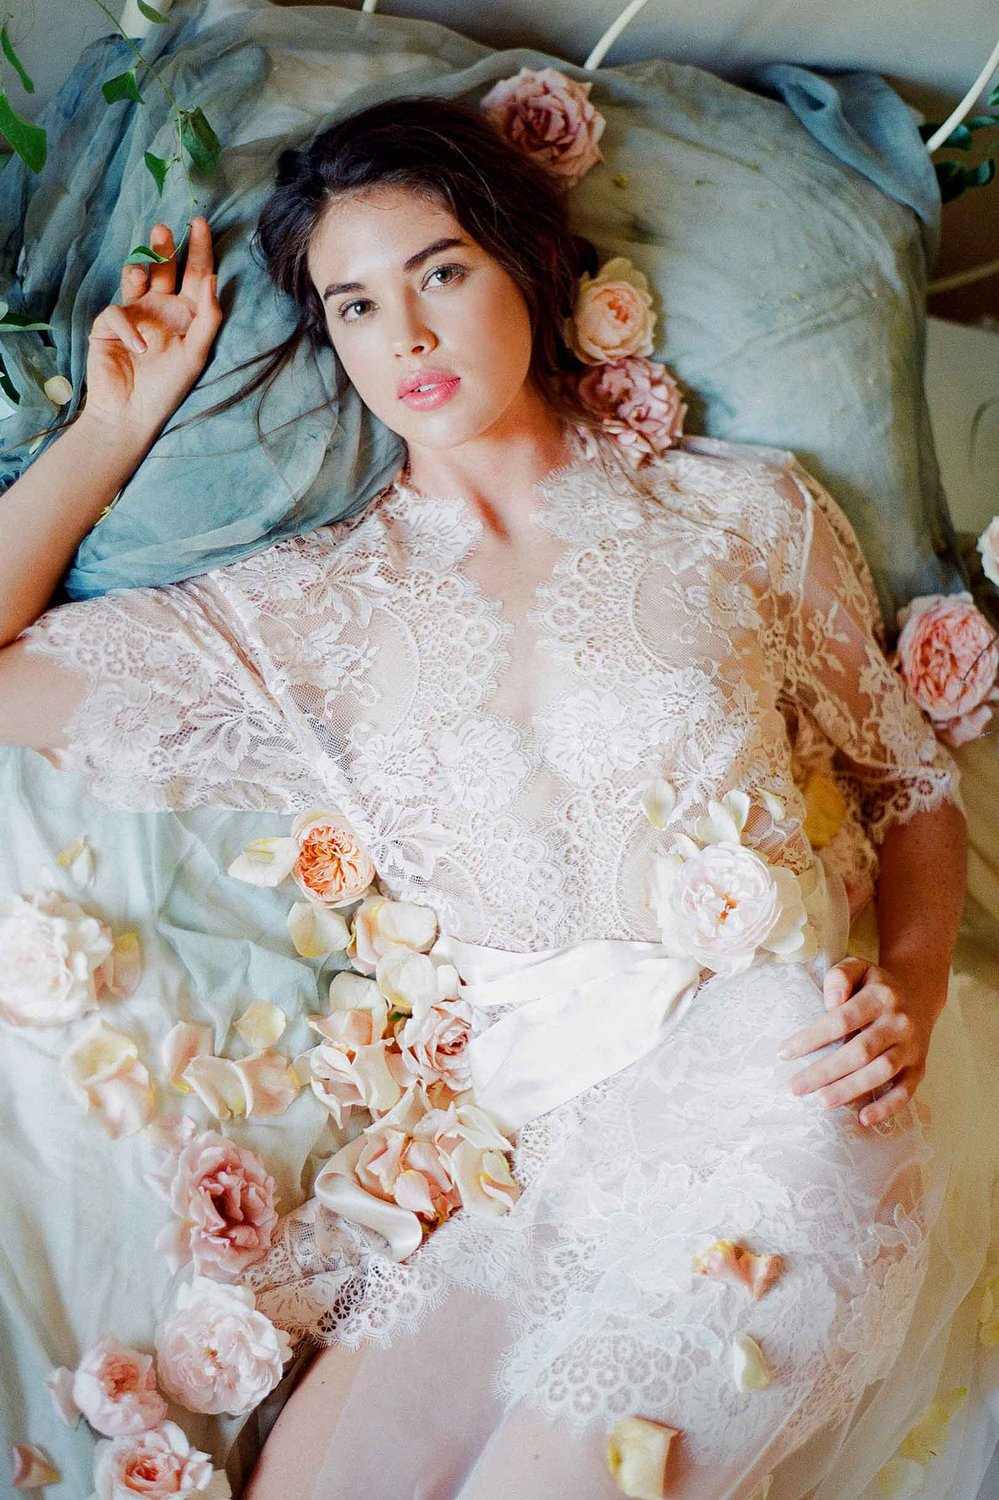 GirlandaSeriousDream+Swan+Queen+lace+robe+blush+pink+getting+ready+wedding+Jose+Villa+bride.jpg